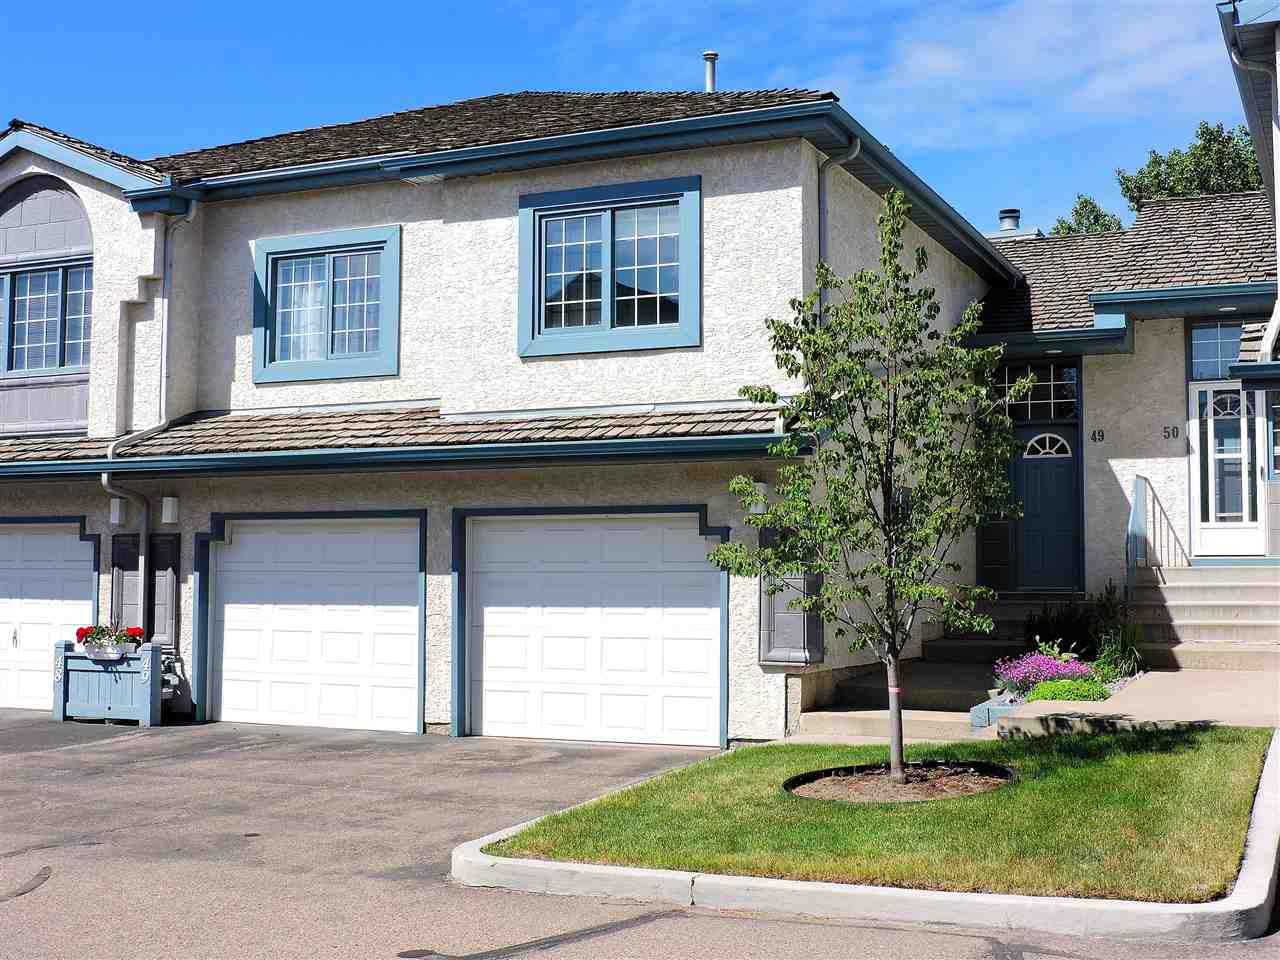 Main Photo: 49 1130 FALCONER Road in Edmonton: Zone 14 Townhouse for sale : MLS® # E4070045